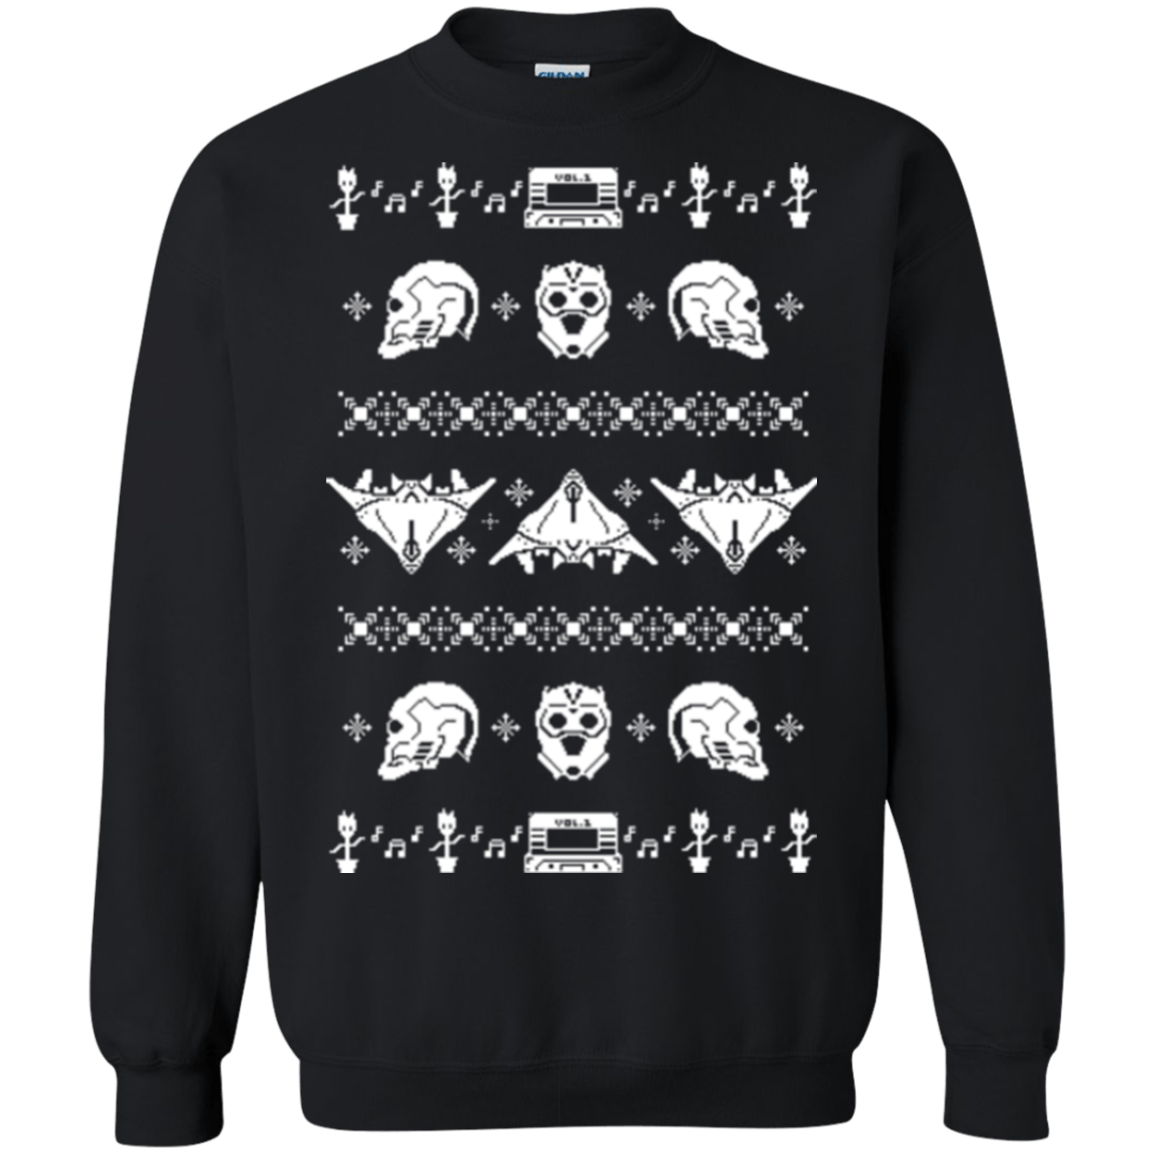 Sweatshirts Black / Small Merry Christmas A-Holes 2 Crewneck Sweatshirt